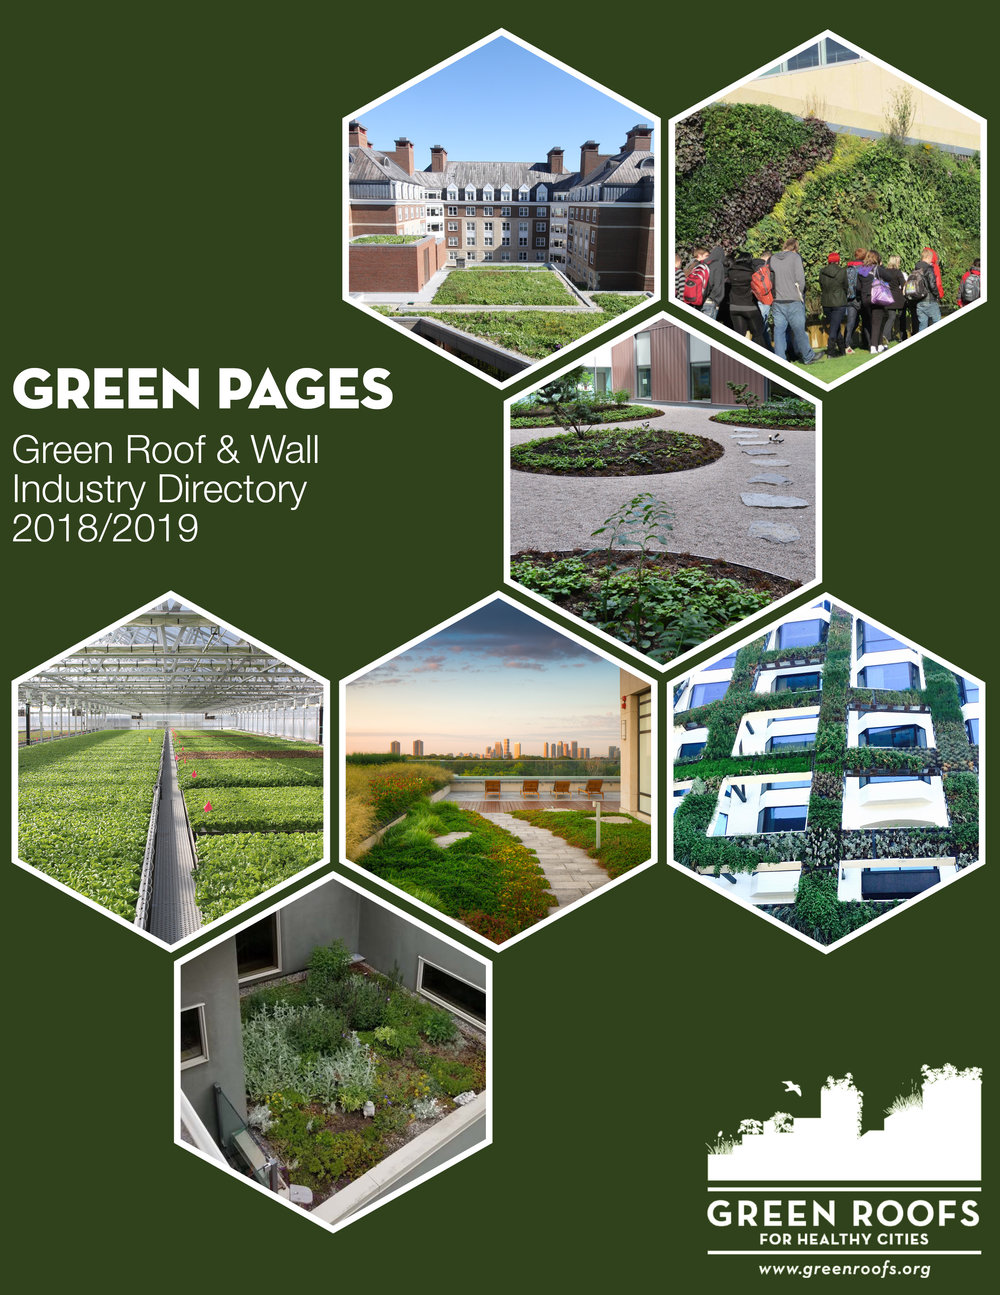 Green_Pages_2018-19_Cover.jpg